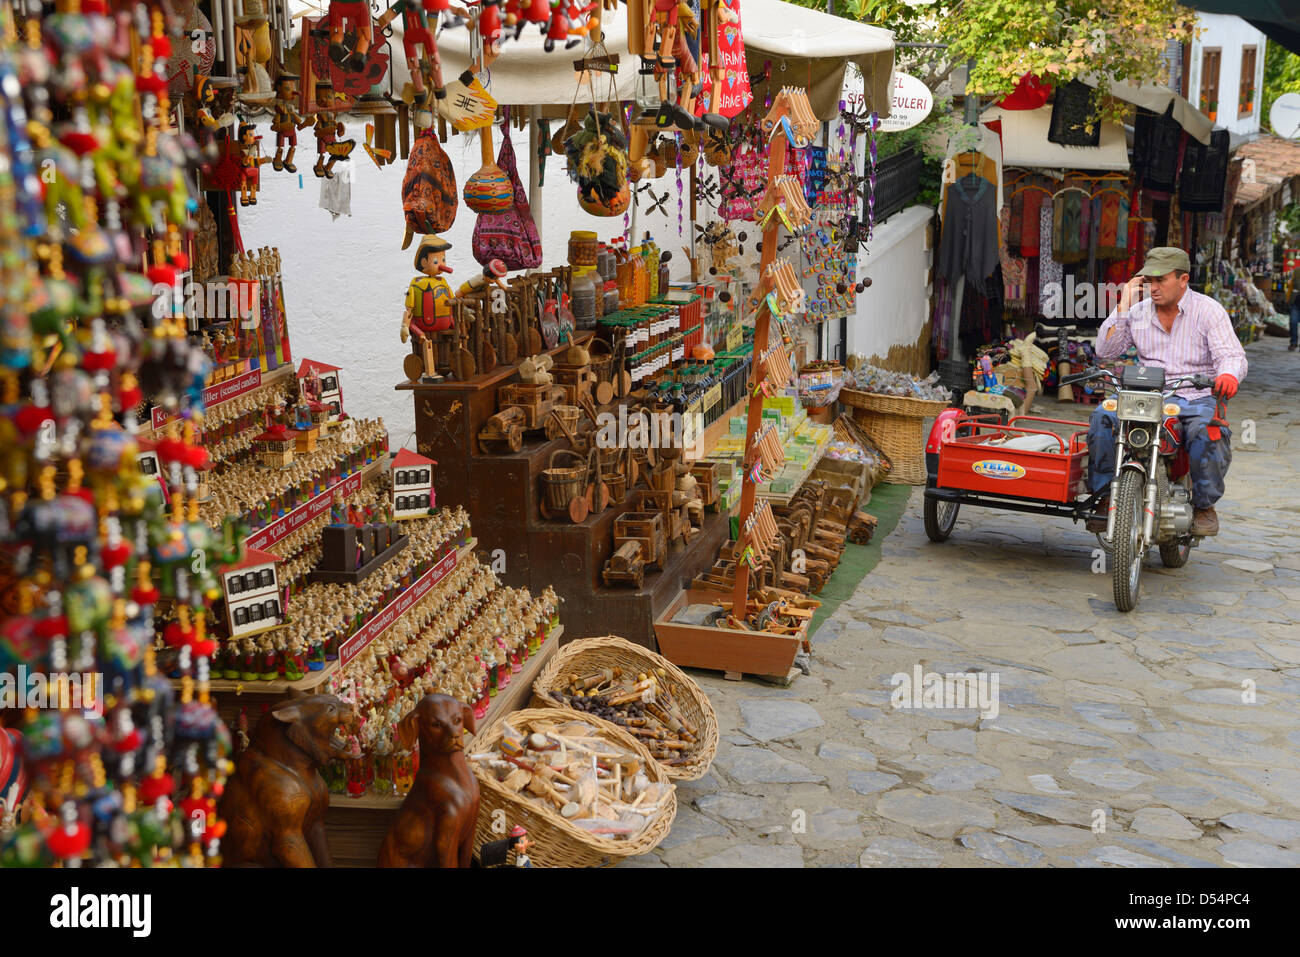 Man on bike with sidecar talking on cellphone beside gift shop at hillside village of Sirince Turkey - Stock Image